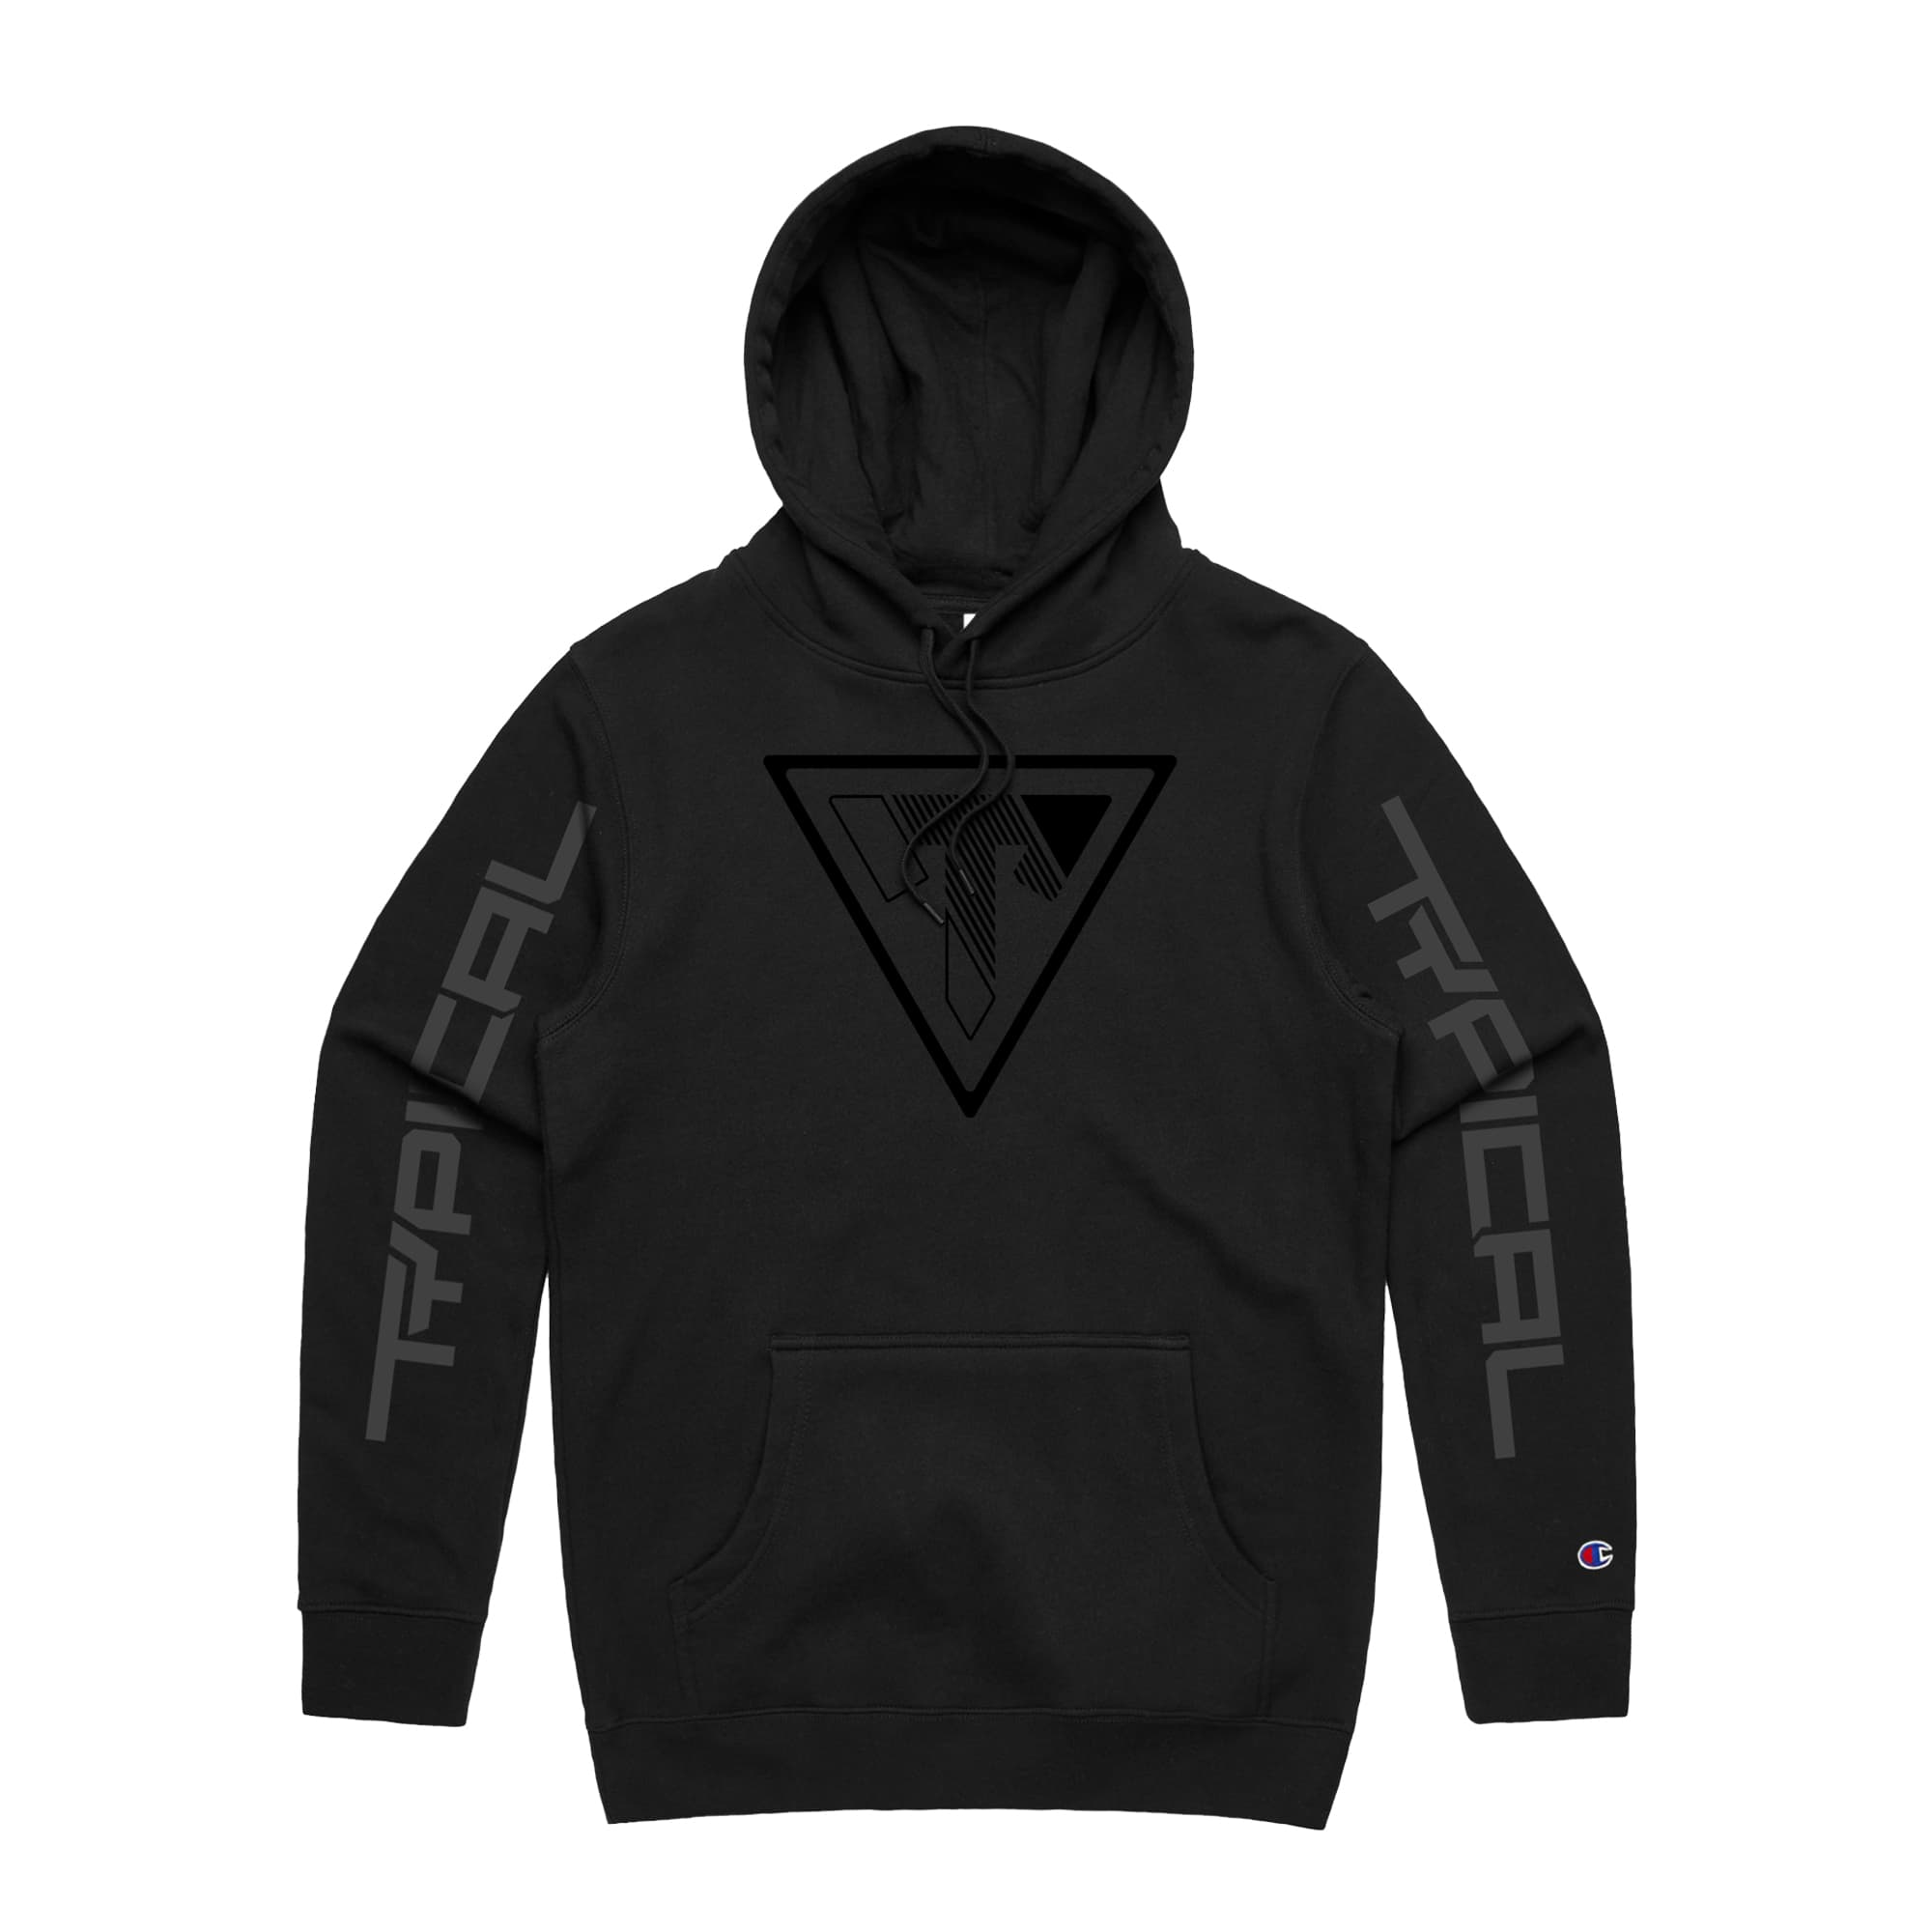 Typical 'Fragments' Spectrum Reflective Champion Hoodie